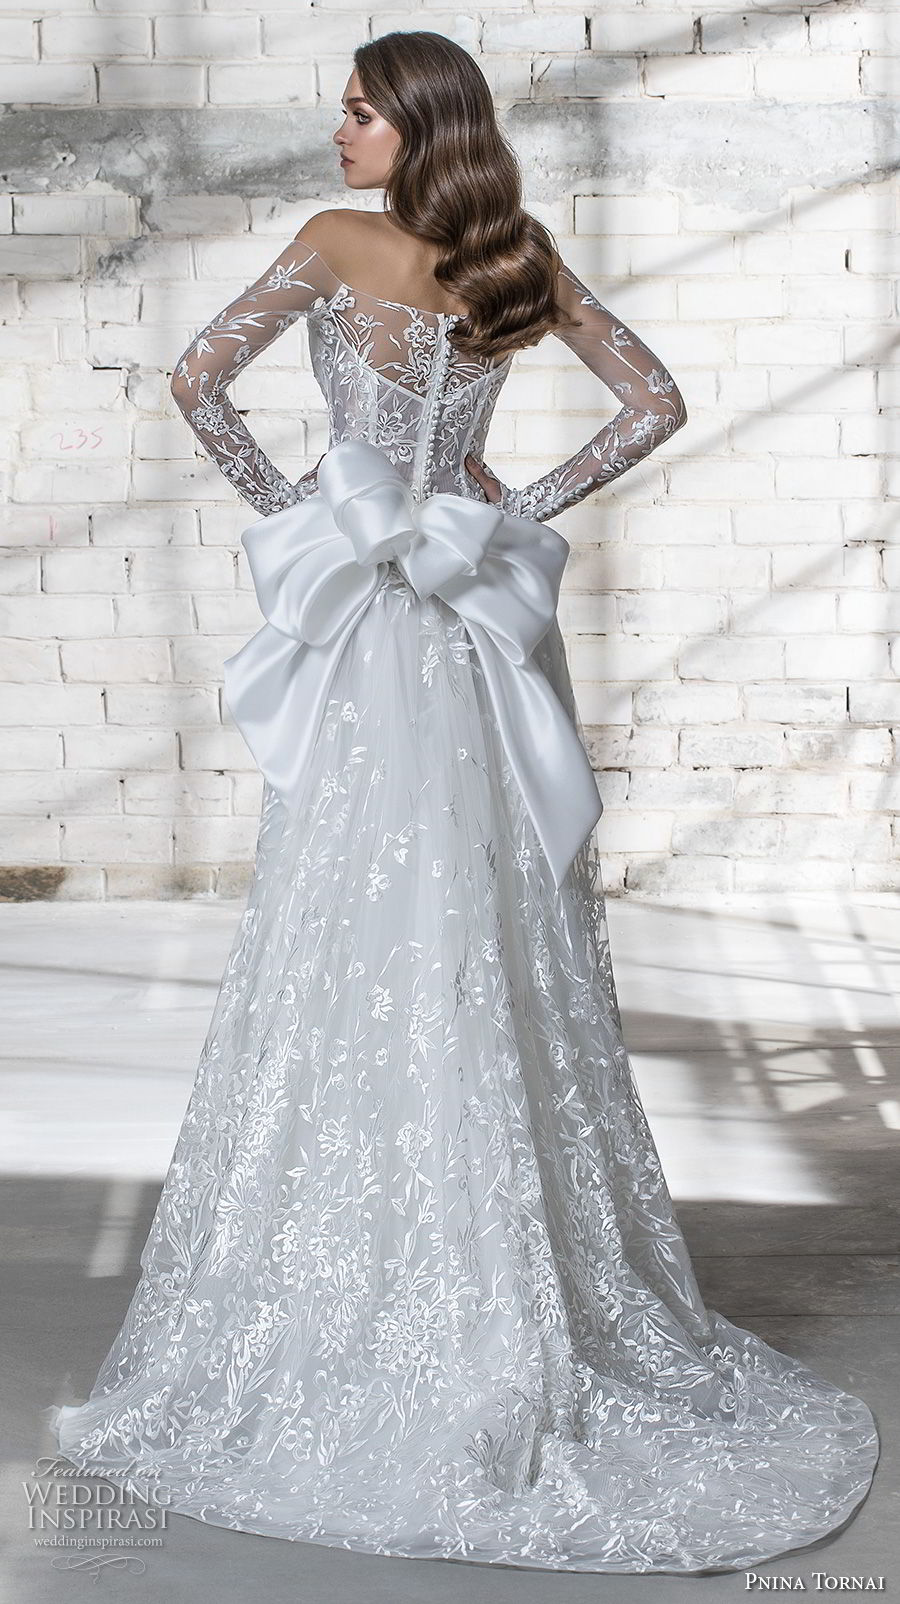 pnina tornai 2019 love bridal long sleeves off the shoulder straight across neckline full embellishment romantic modified a line wedding dress sheer lace back sweep train (3) bv